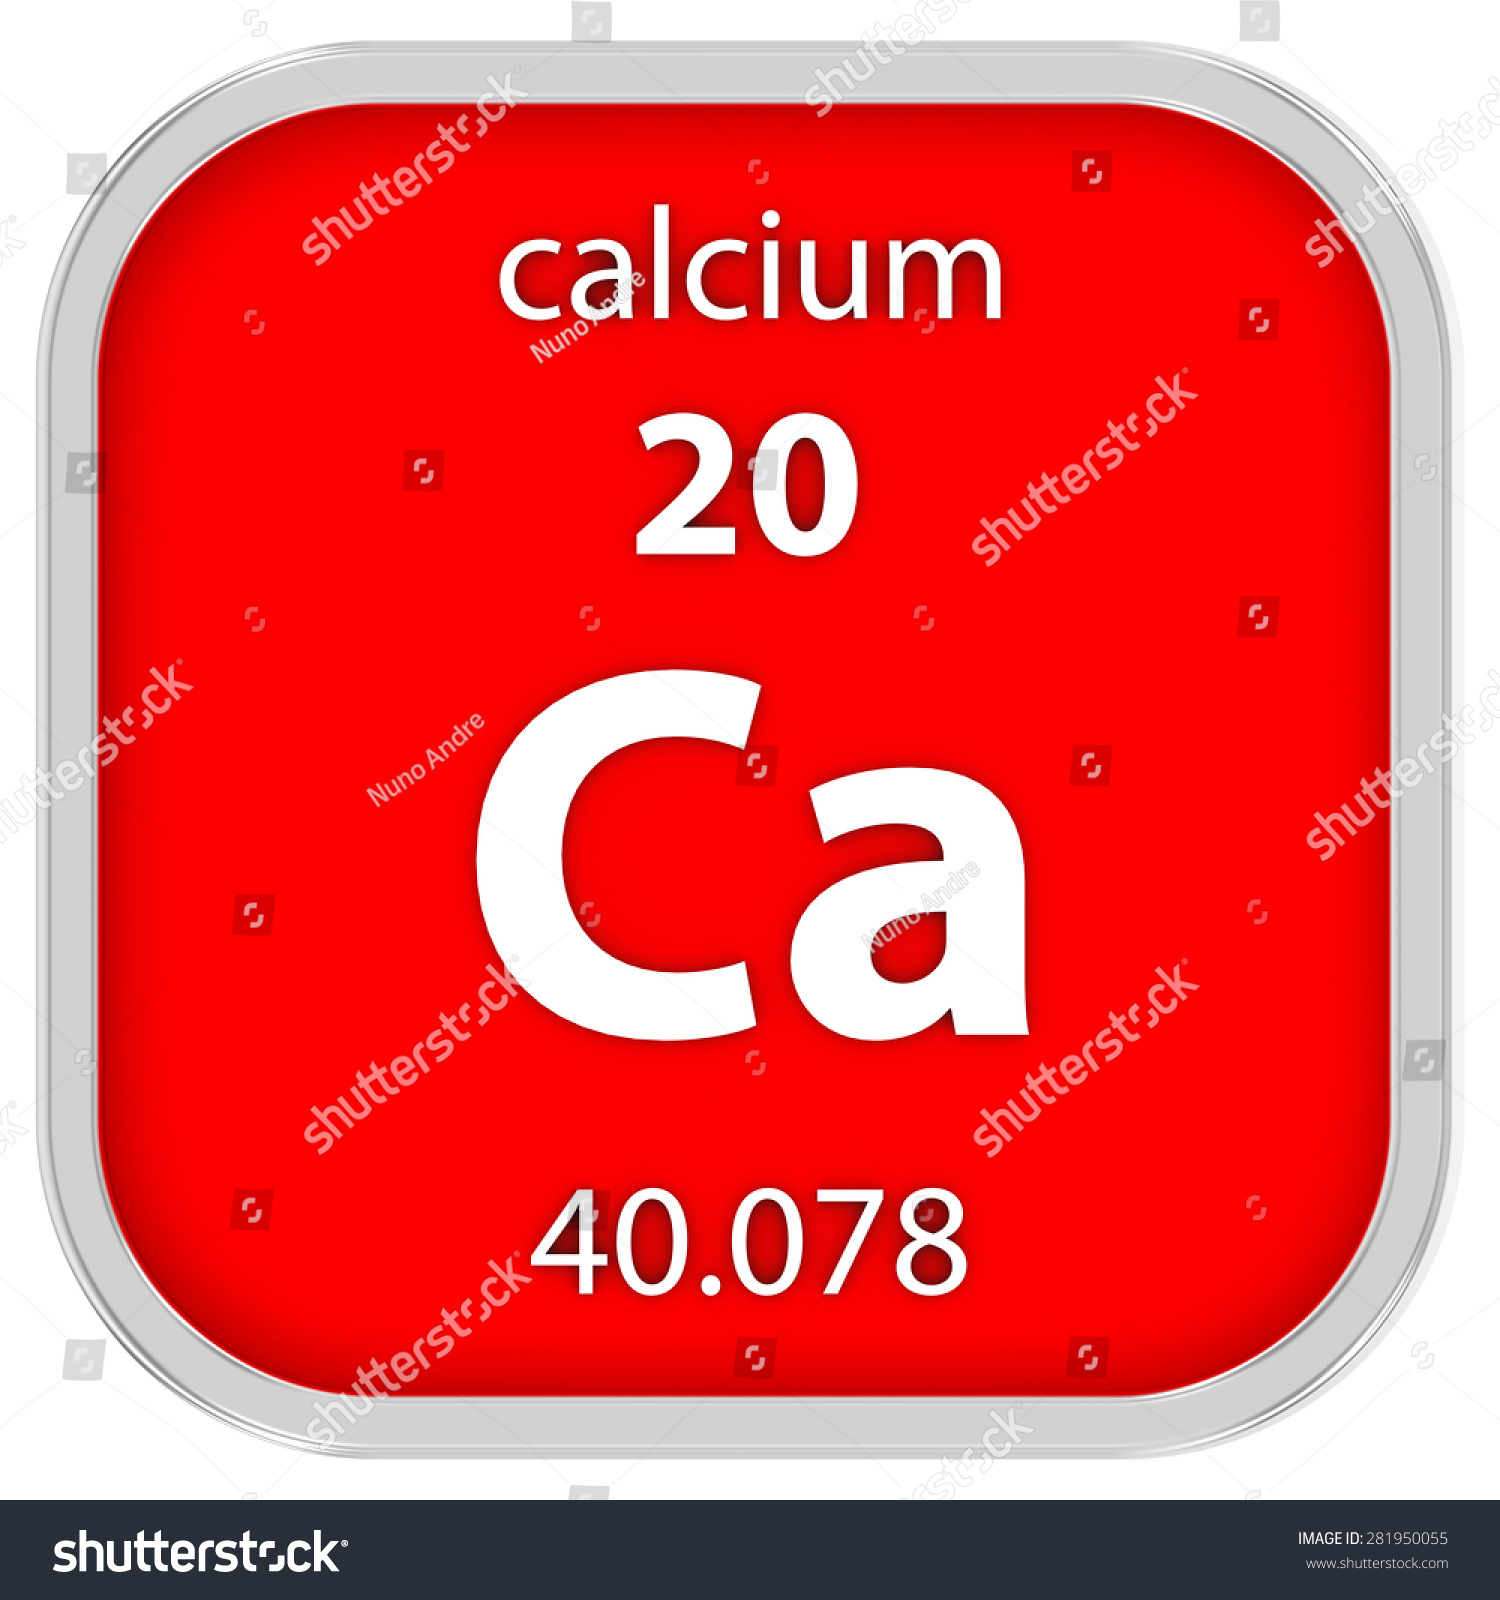 Calcium periodic table definition periodic diagrams science what number is carbon on the periodic table image collections urtaz Gallery